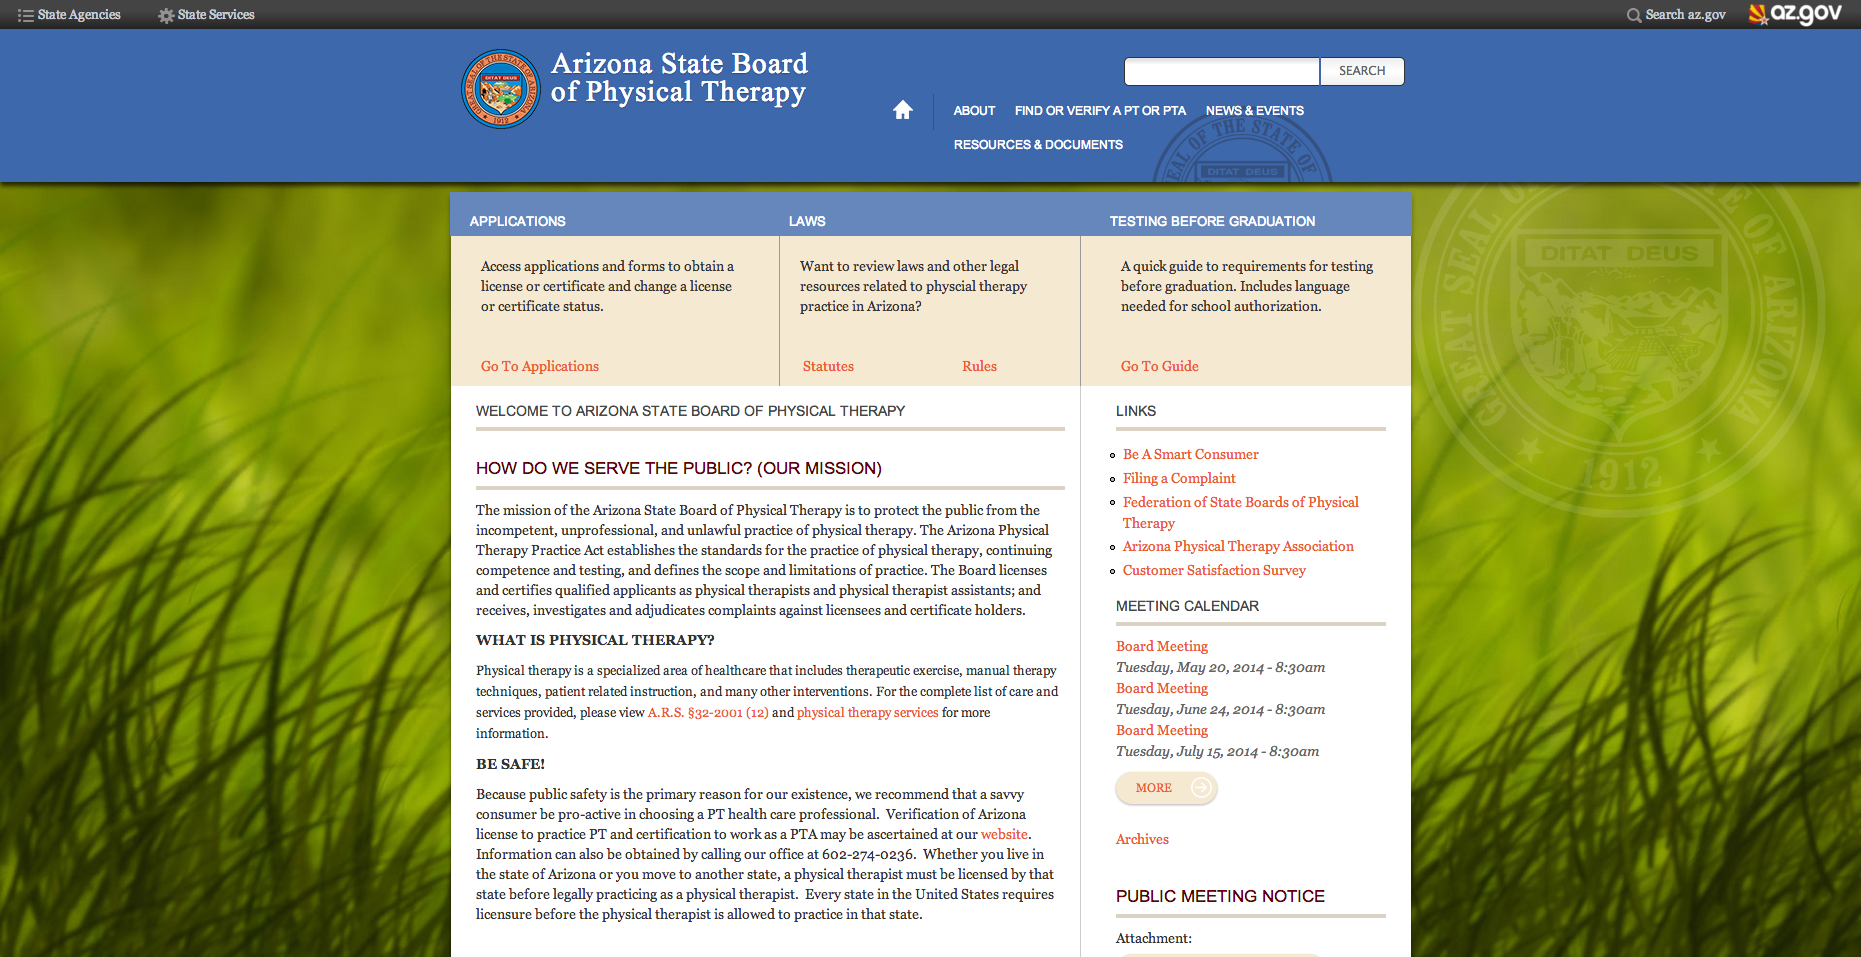 Board of physical therapy - Arizona State Board Of Physical Therapy Website Homepage